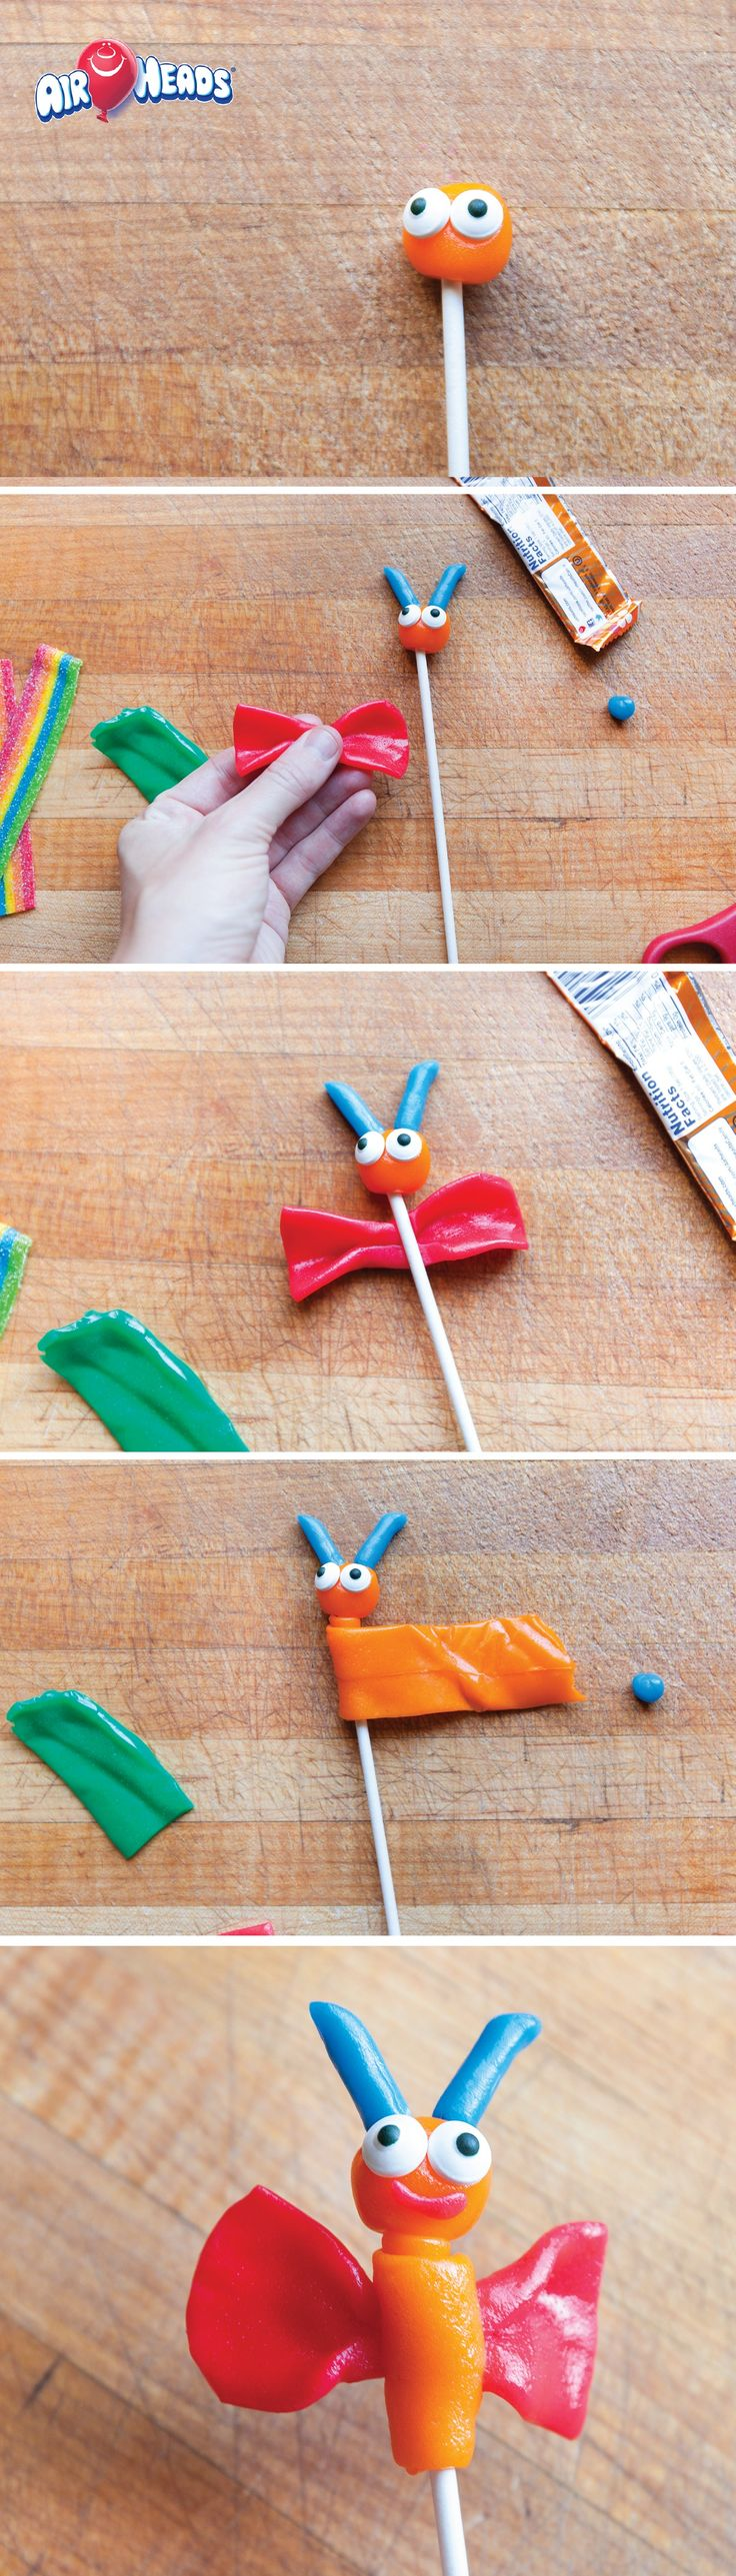 Spend hours laughing and crafting with your kids after school by creating these adorable and edible butterfly friends! Use Airheads candy to cut and sculpt into colorful shapes to create this fun candy craft.